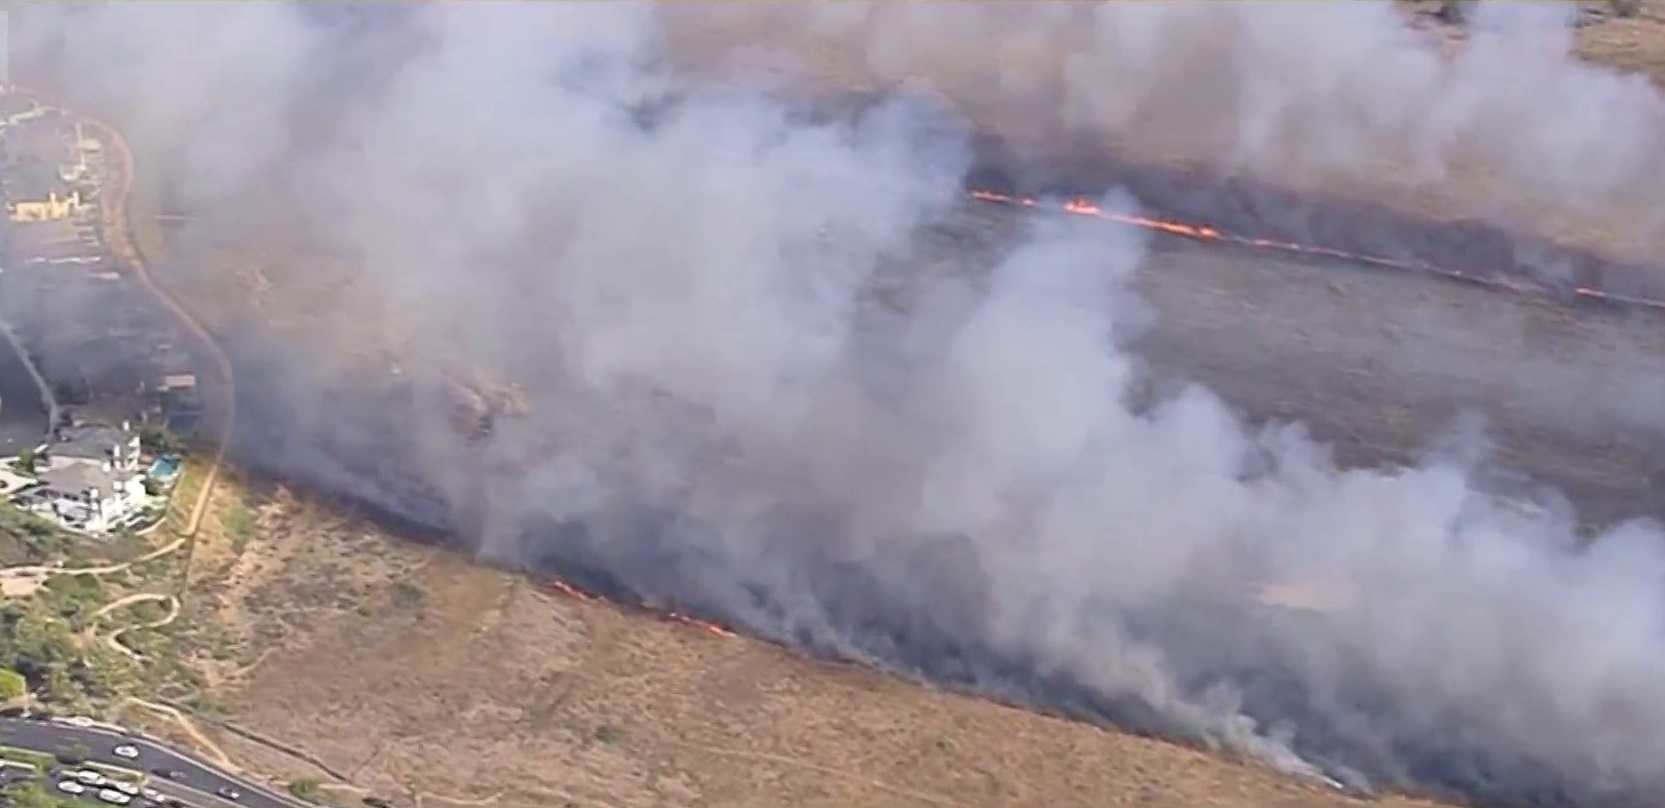 Firefighters Contain Brush Fire Just 100 Yards Away From Homes in Huntington Beach